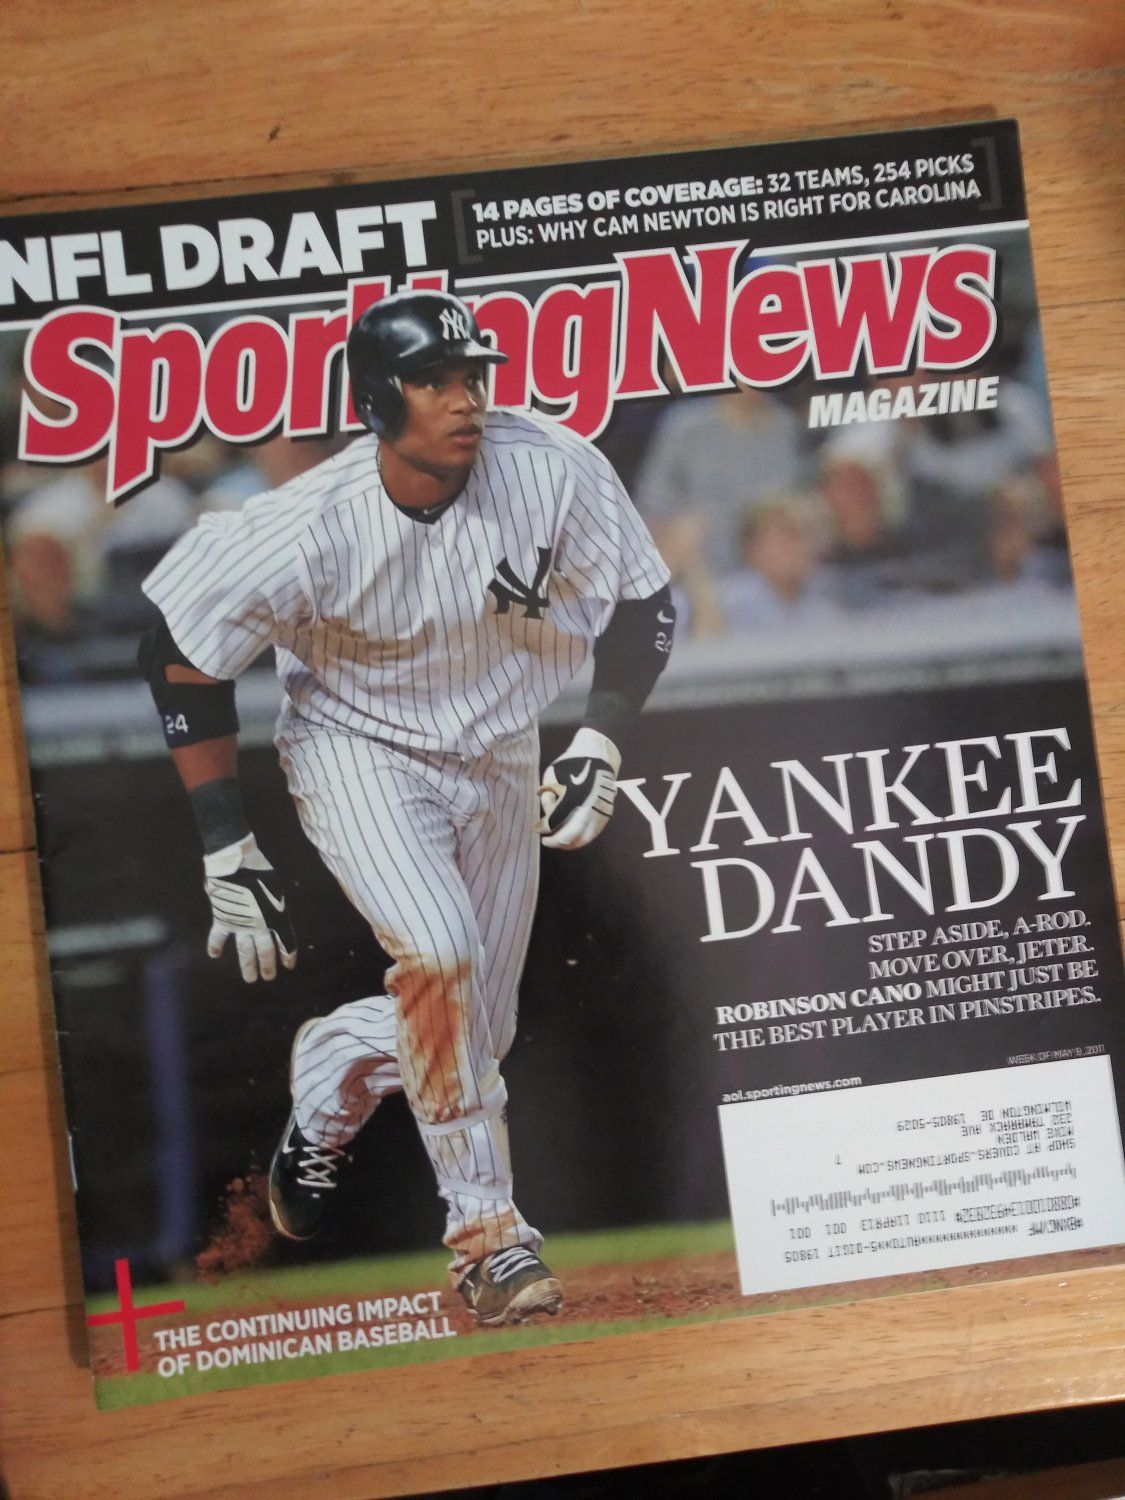 May 9 2011 Sporting News Featuring Robinson Cano Of The New York Yankees In 2020 Robinson Cano New York Yankees Robinson